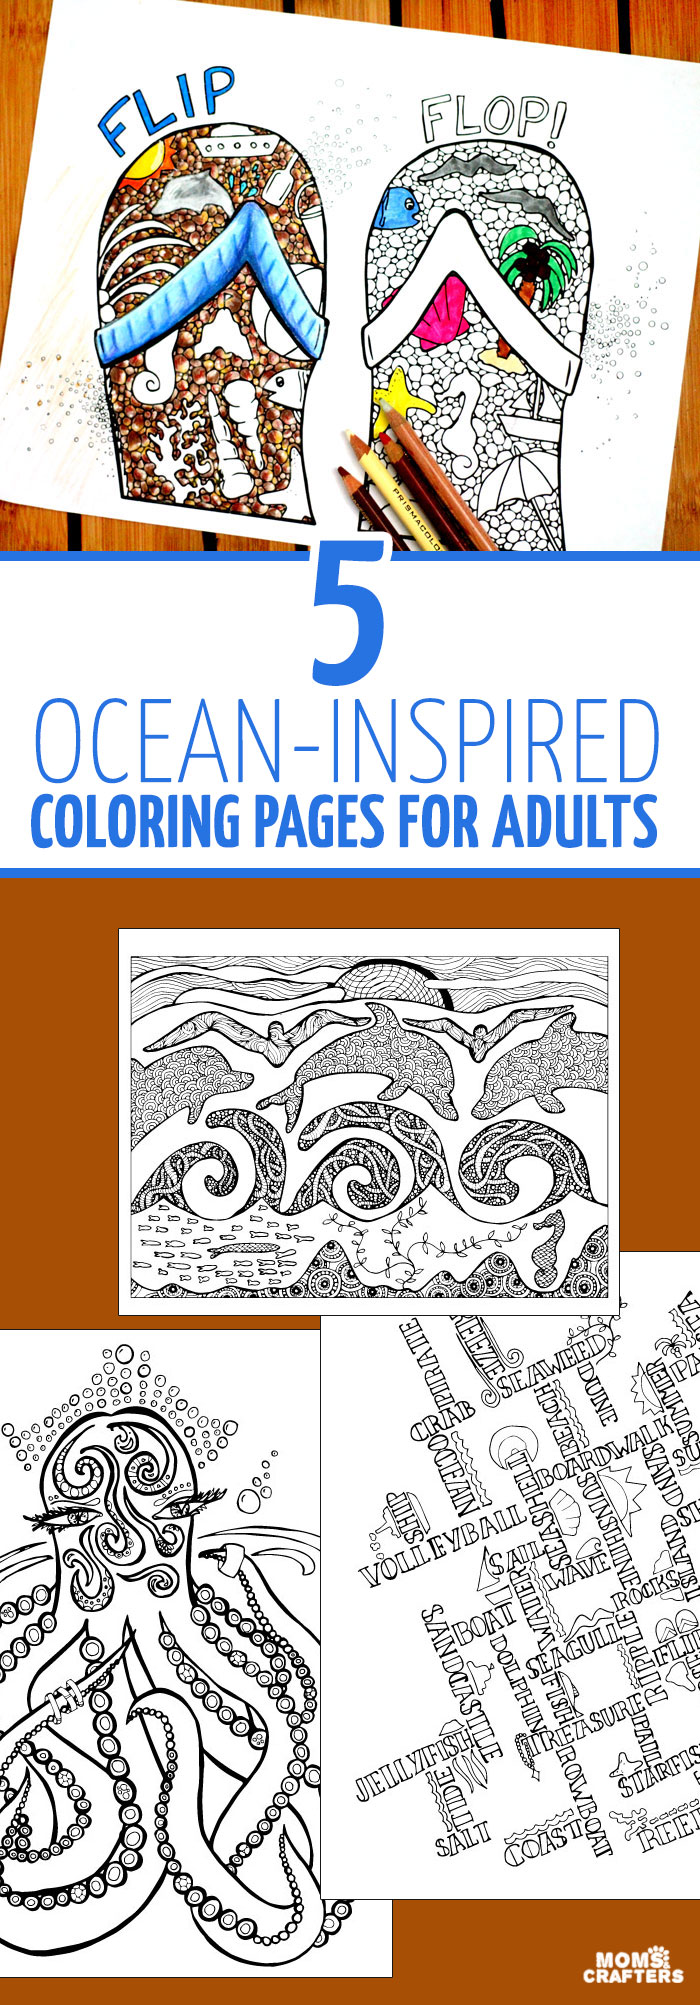 These beach themed ocean coloring pages for adults are so cool - many different levels of difficulty, and unique complex hand drawn pages. YOu'll love these sea coloring pages, especially the flip flops.